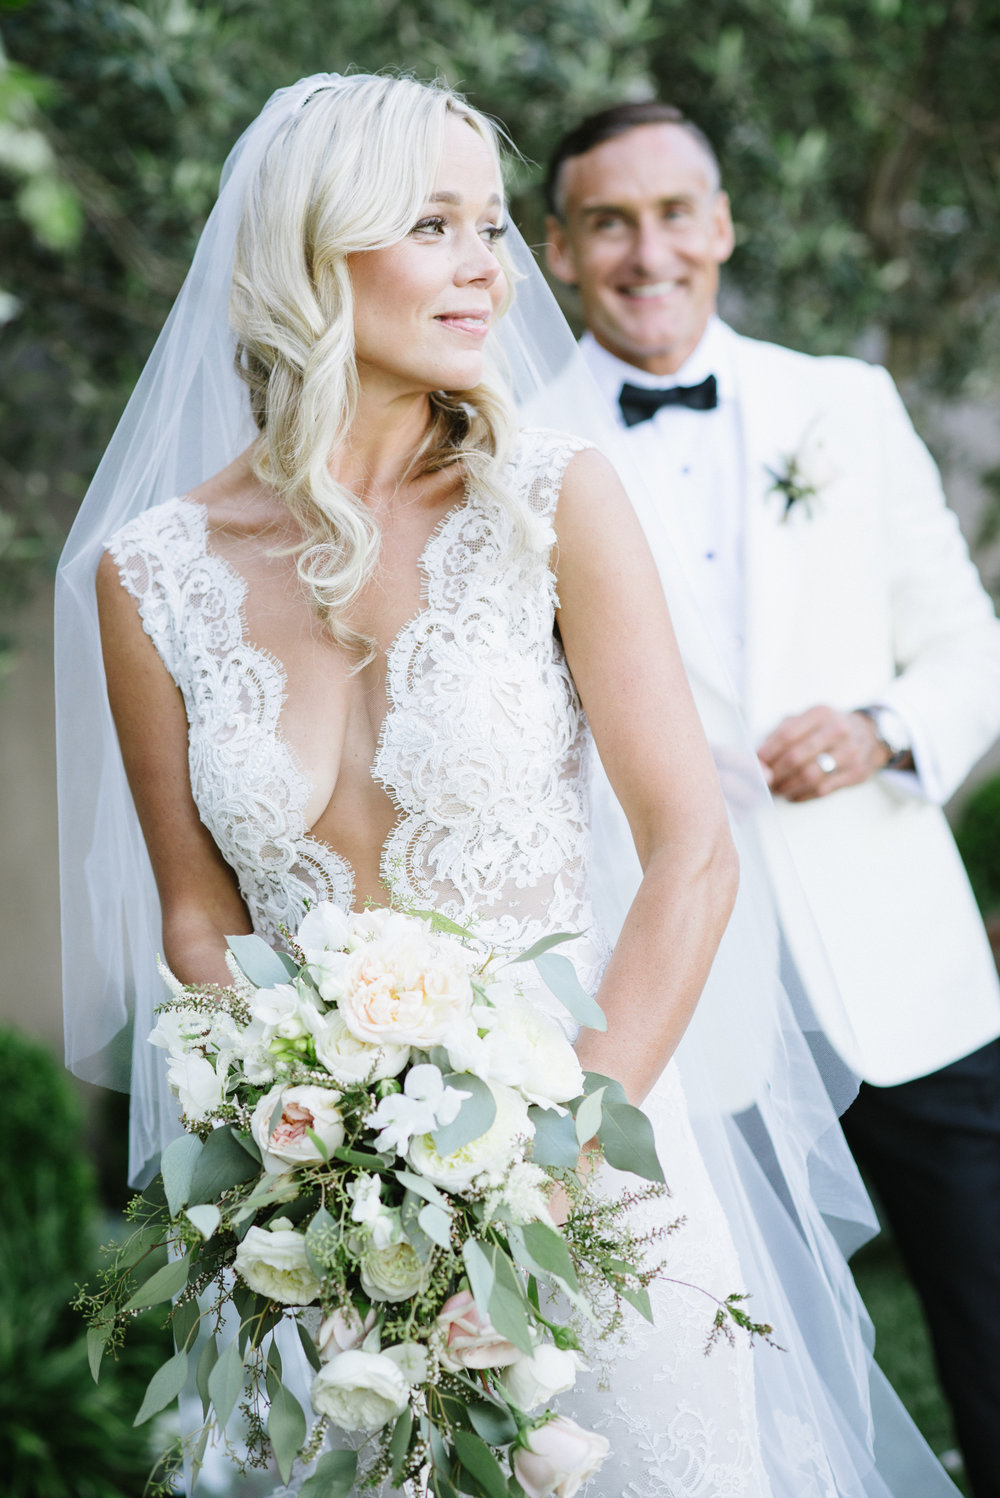 Susan Adler Photography | Tina and Joel Marin Wedding